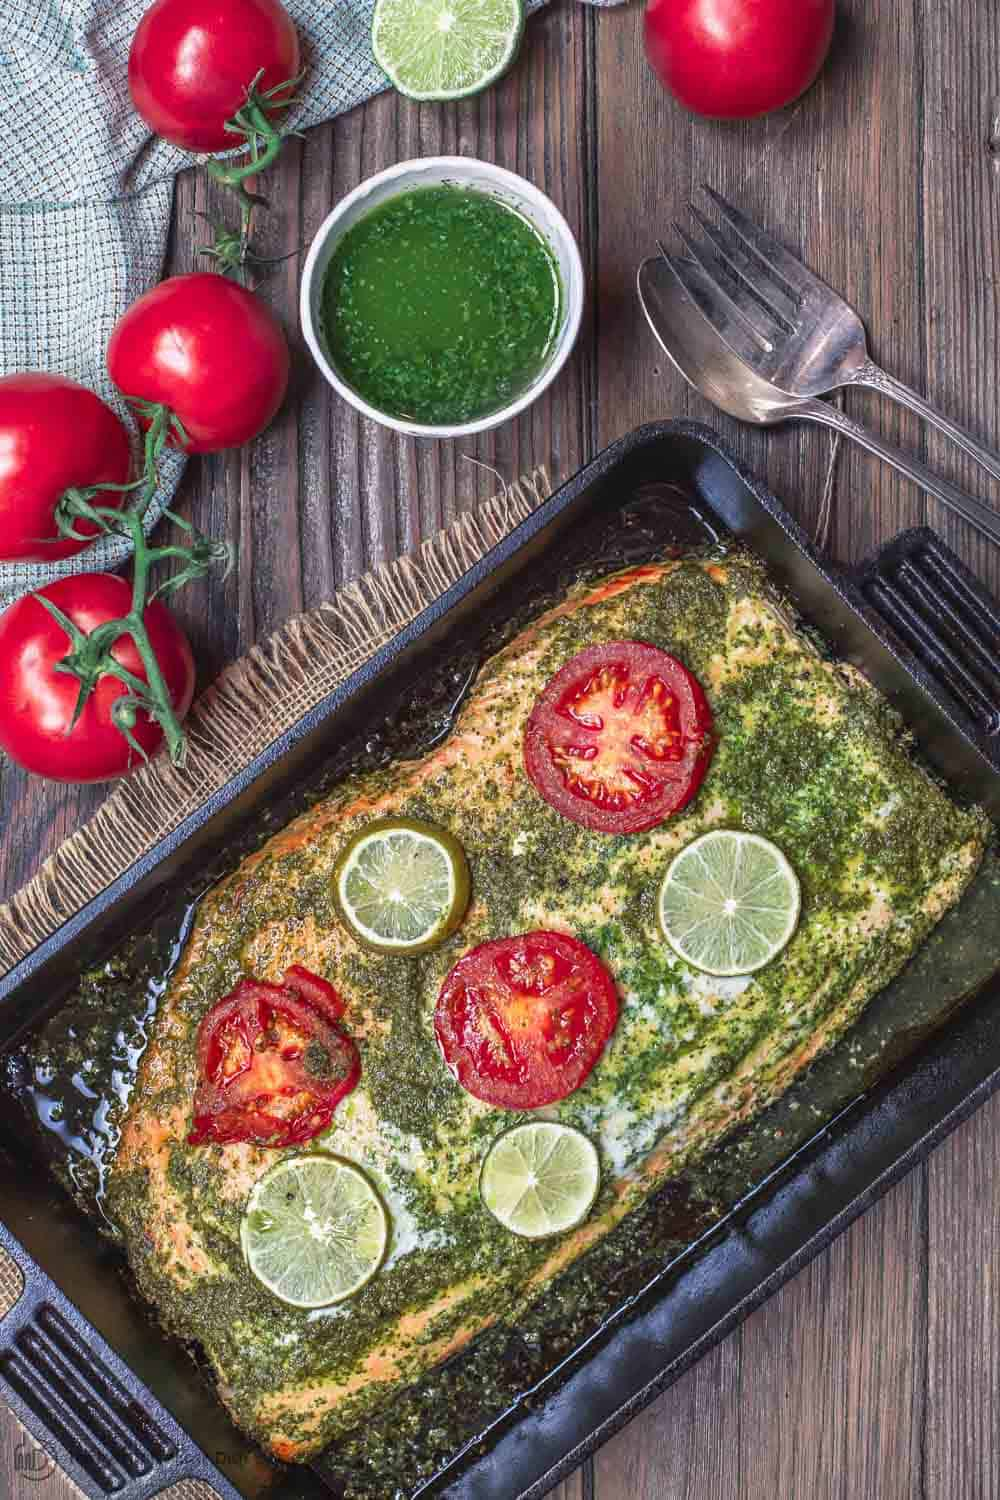 Baked Salmon Served with extra garlic cilantro sauce on side and more tomatoes